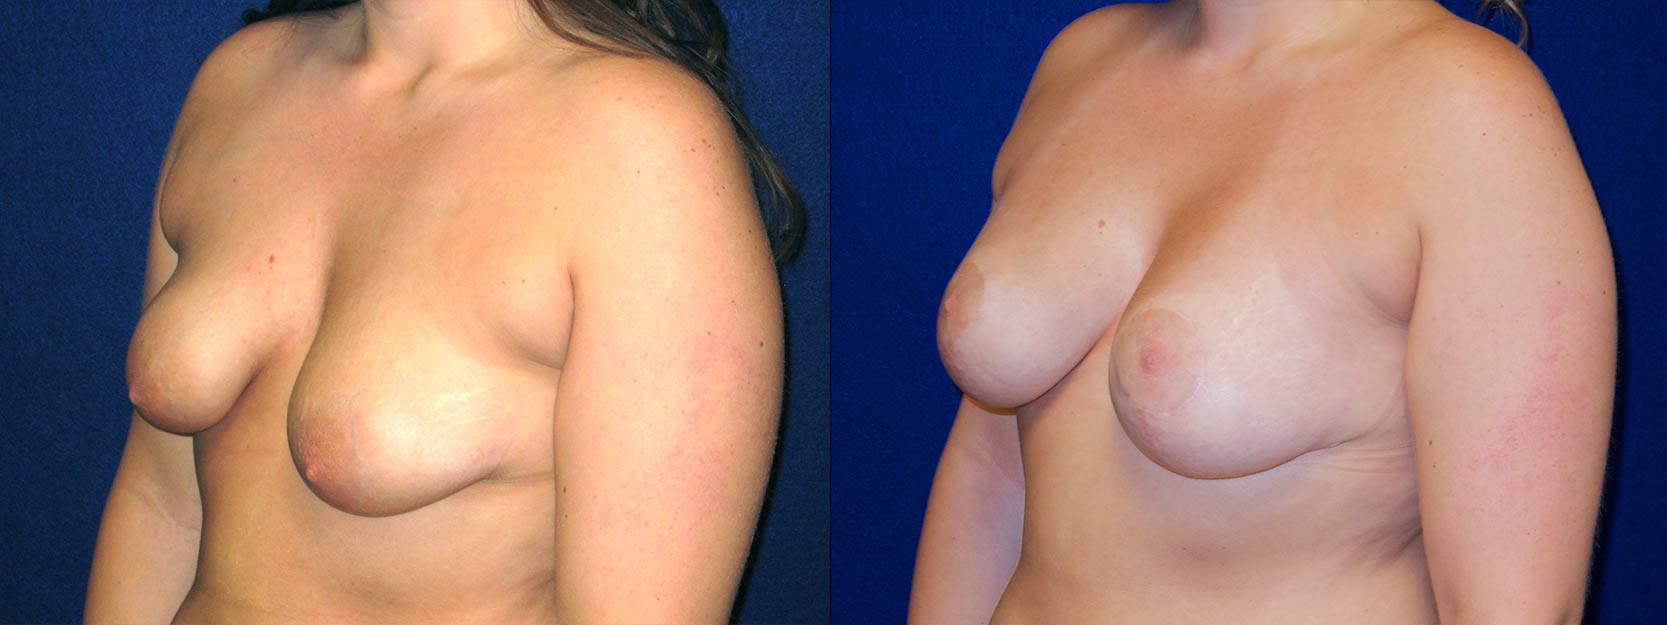 Left 3/4 View - Breast Augmentation with Lift - Silicone Implants